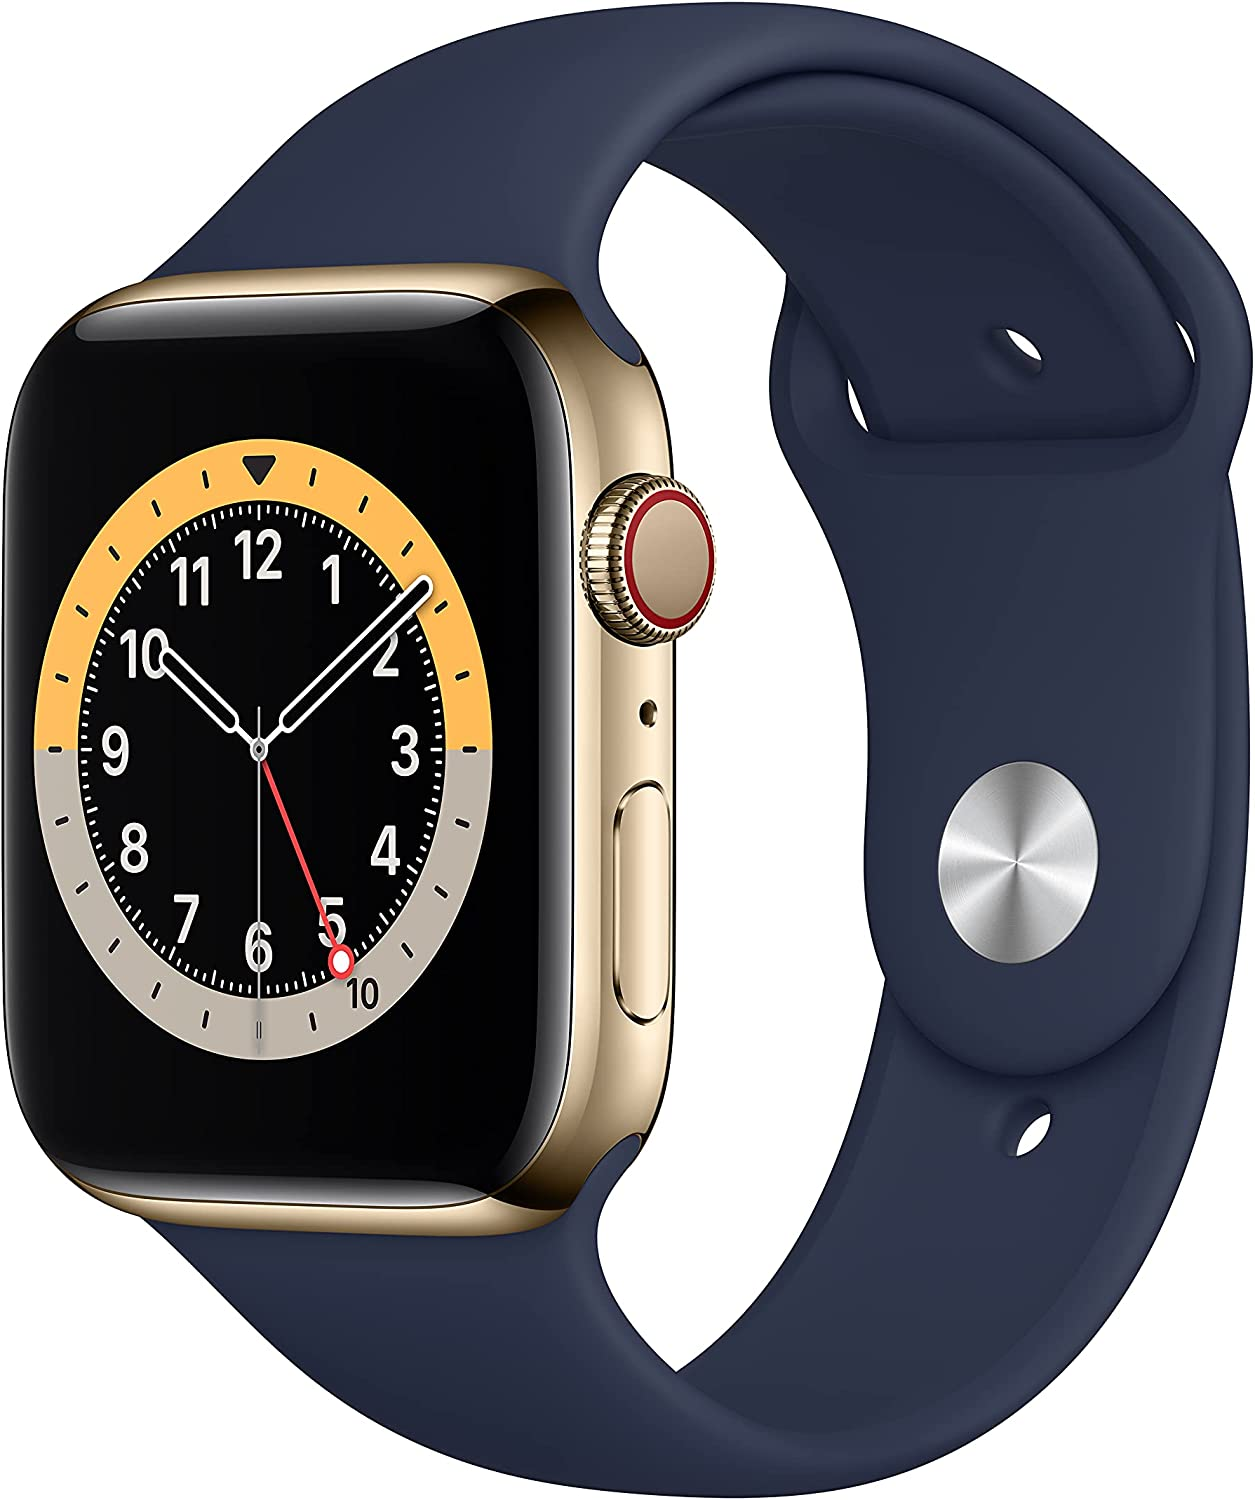 New Apple Watch Series 6 (GPS + Cellular, 44mm) - Gold Stainless Steel Case with Deep Navy Sport Band